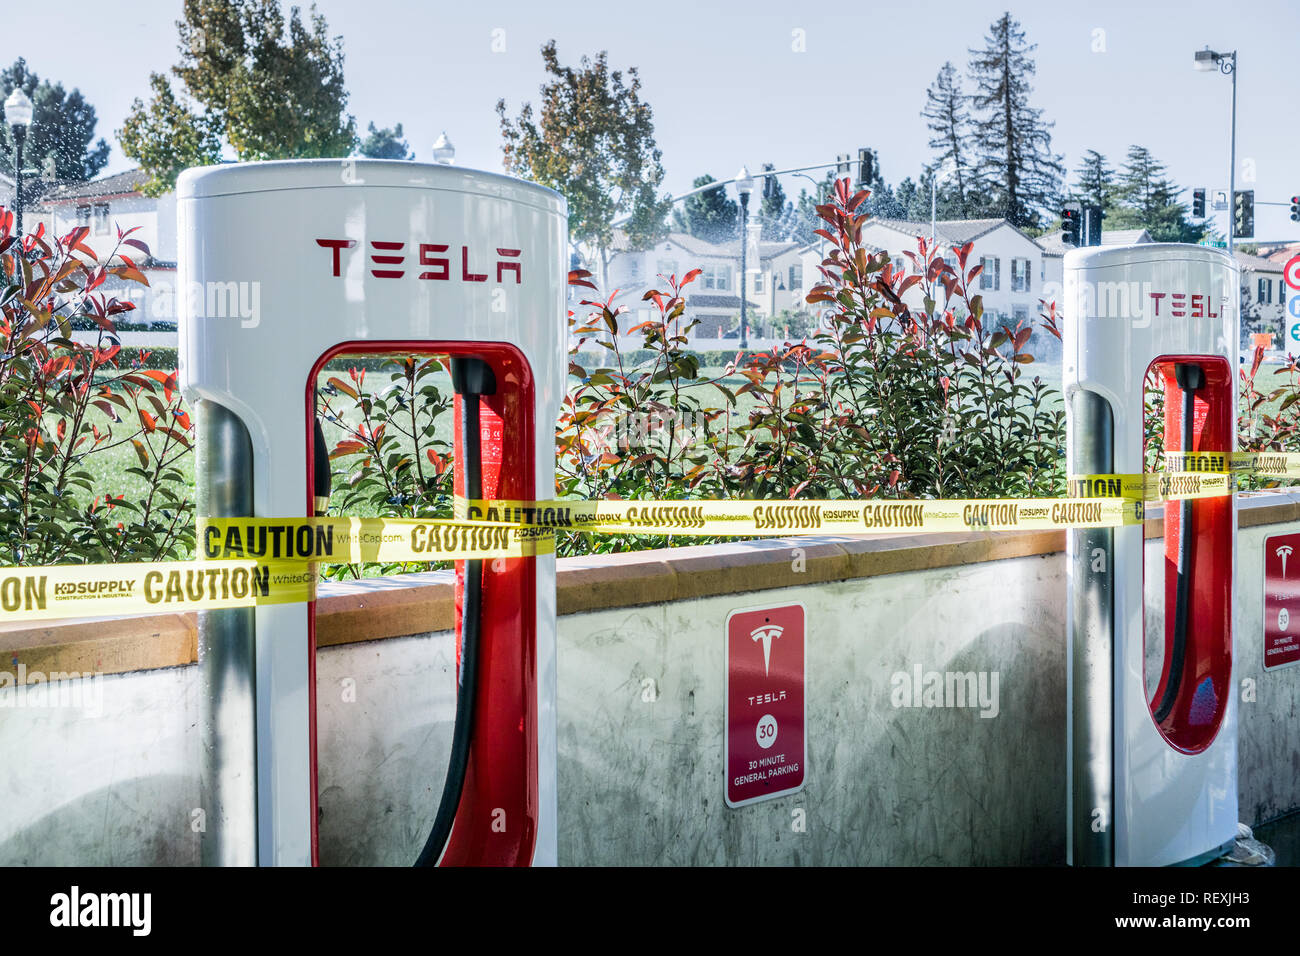 December 4, 2017 Sunnyvale/CA/USA - New Tesla charging station about to open in downtown Sunnyvale, Silicon Valley, San Francisco bay - Stock Image